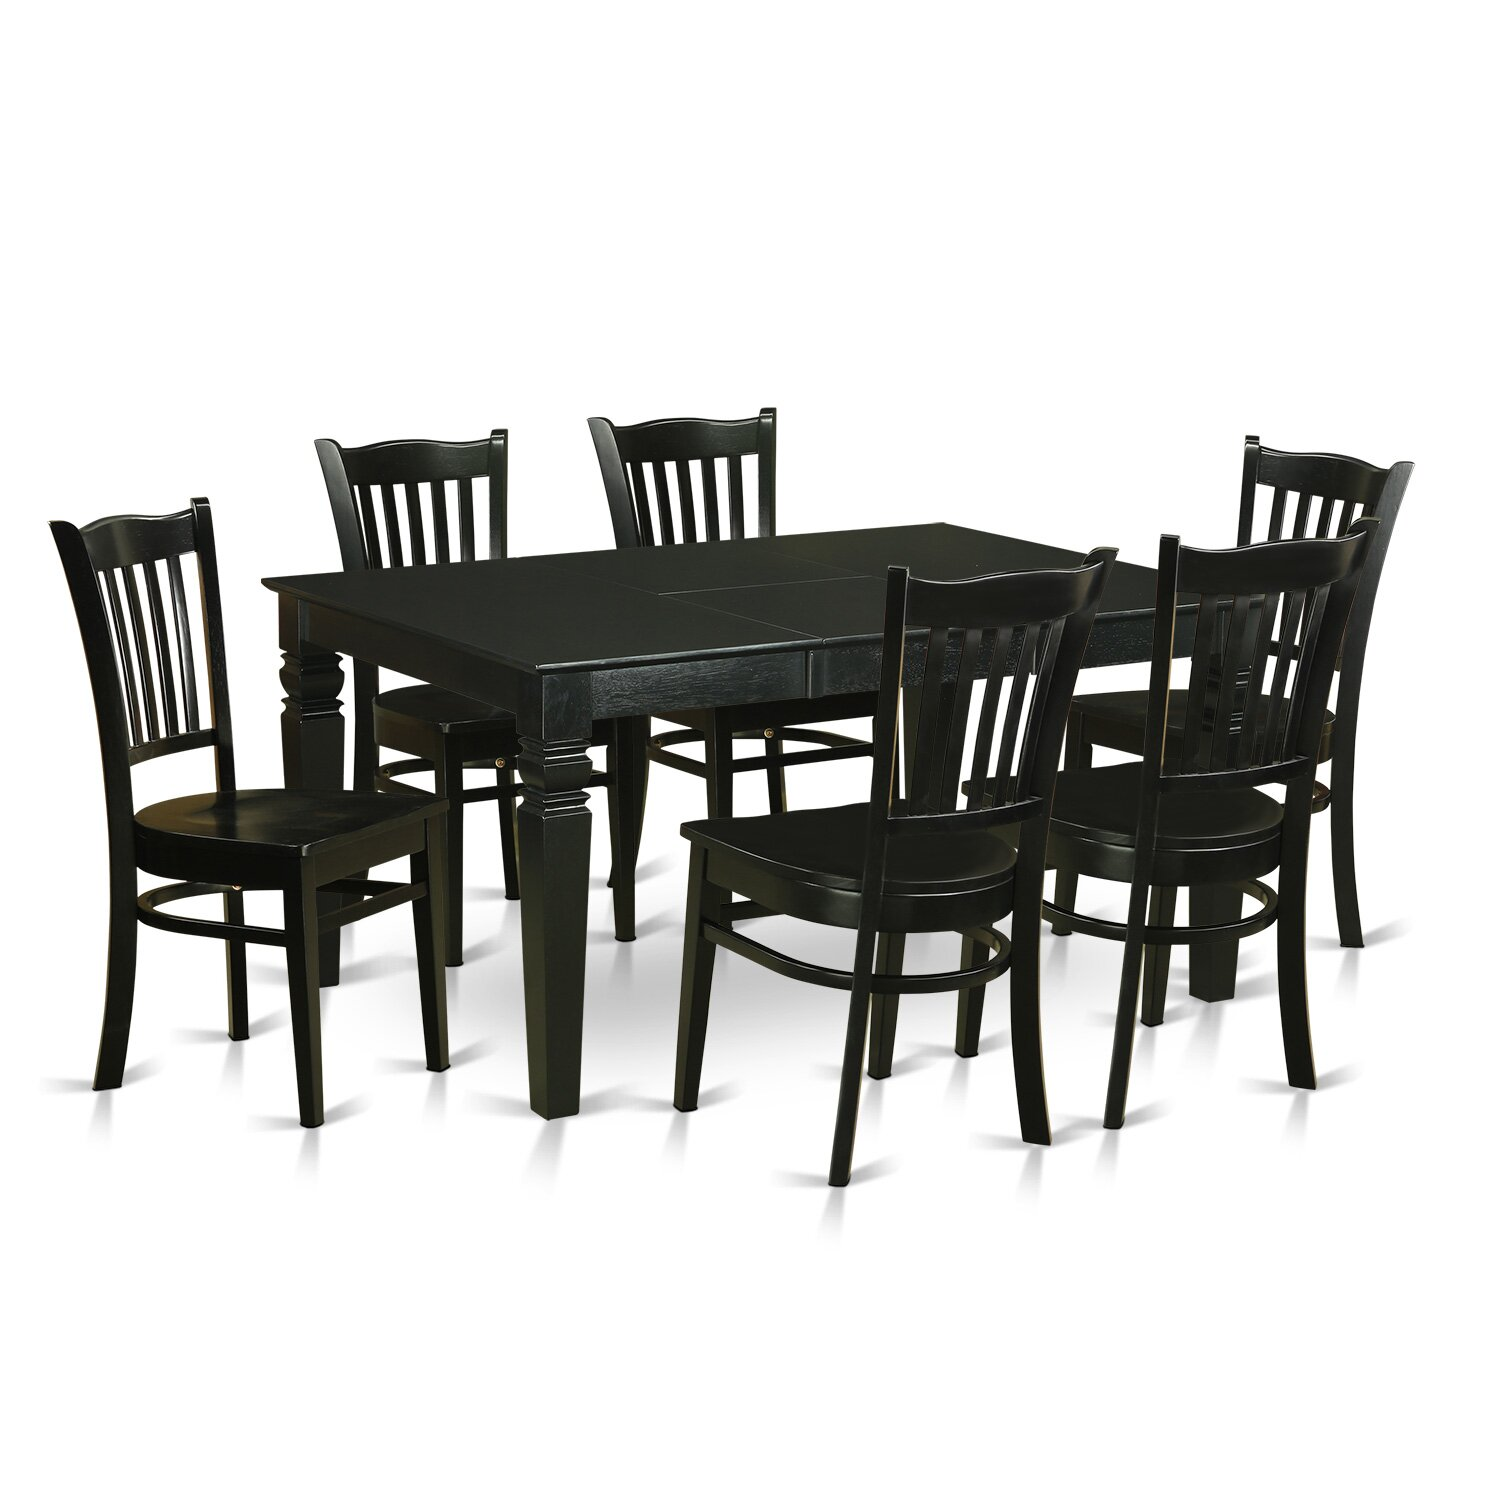 Wooden importers weston 7 piece dining set wayfair for Dining room sets 6 piece